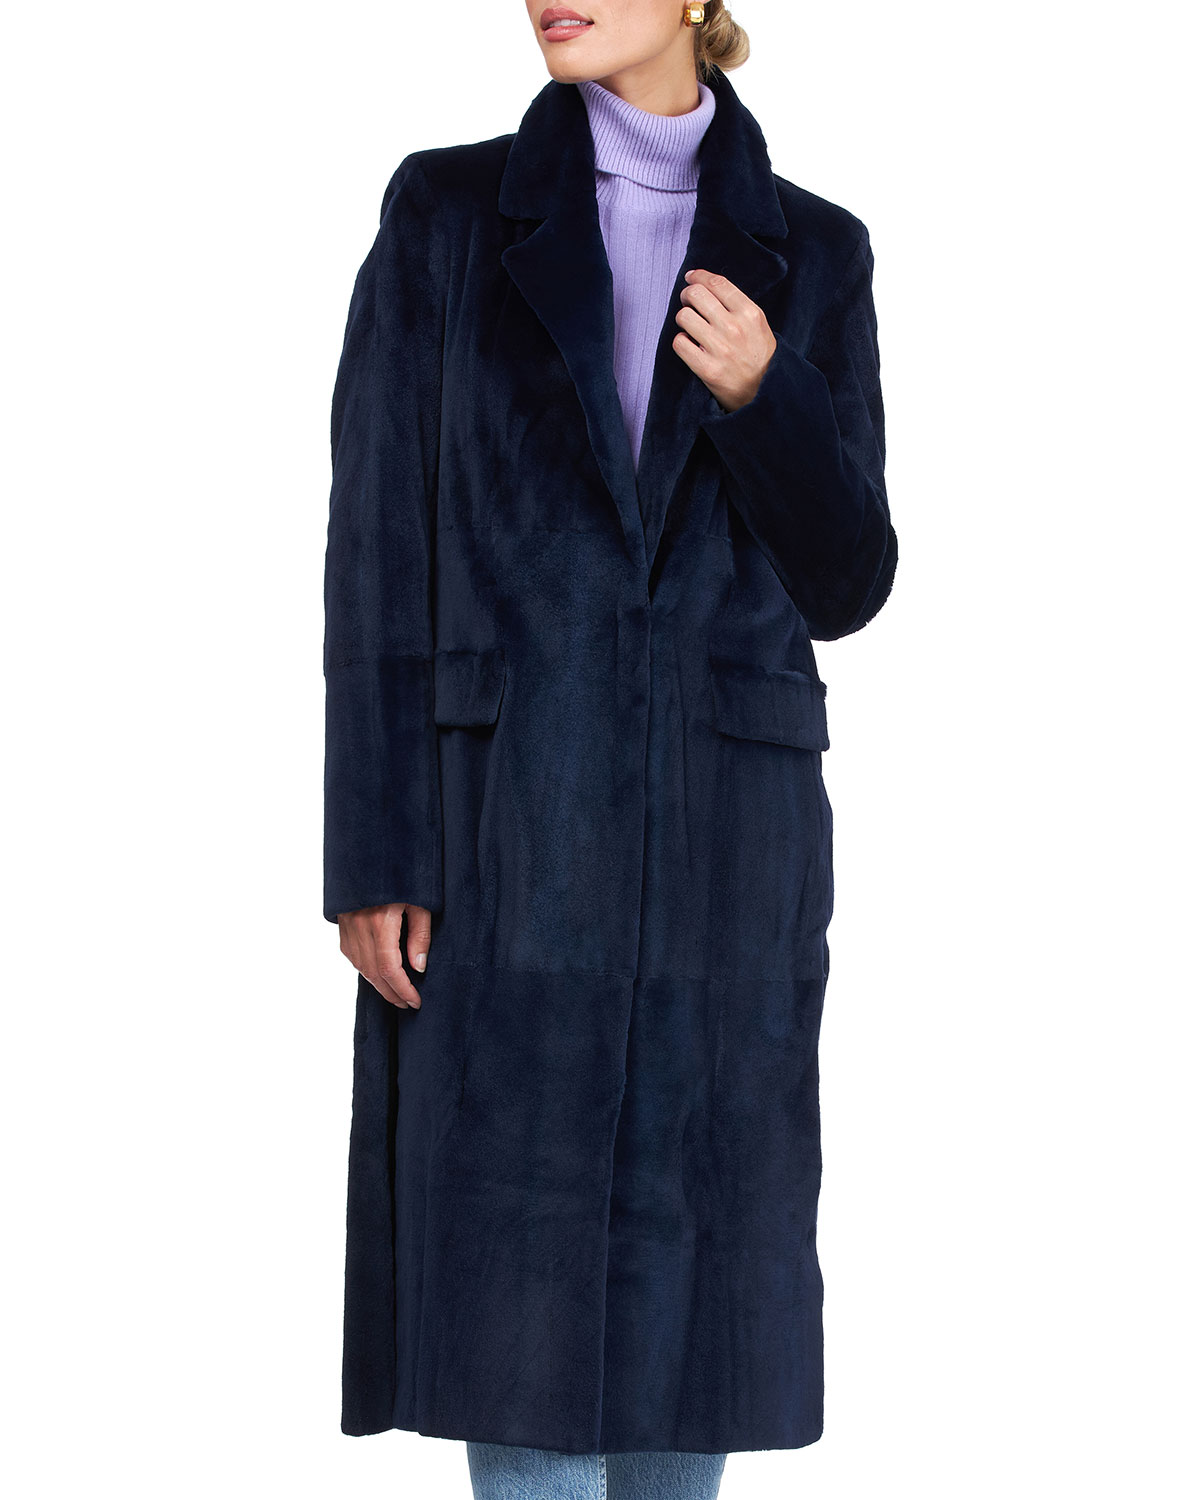 Sheared Mink Coat with Notched Collar